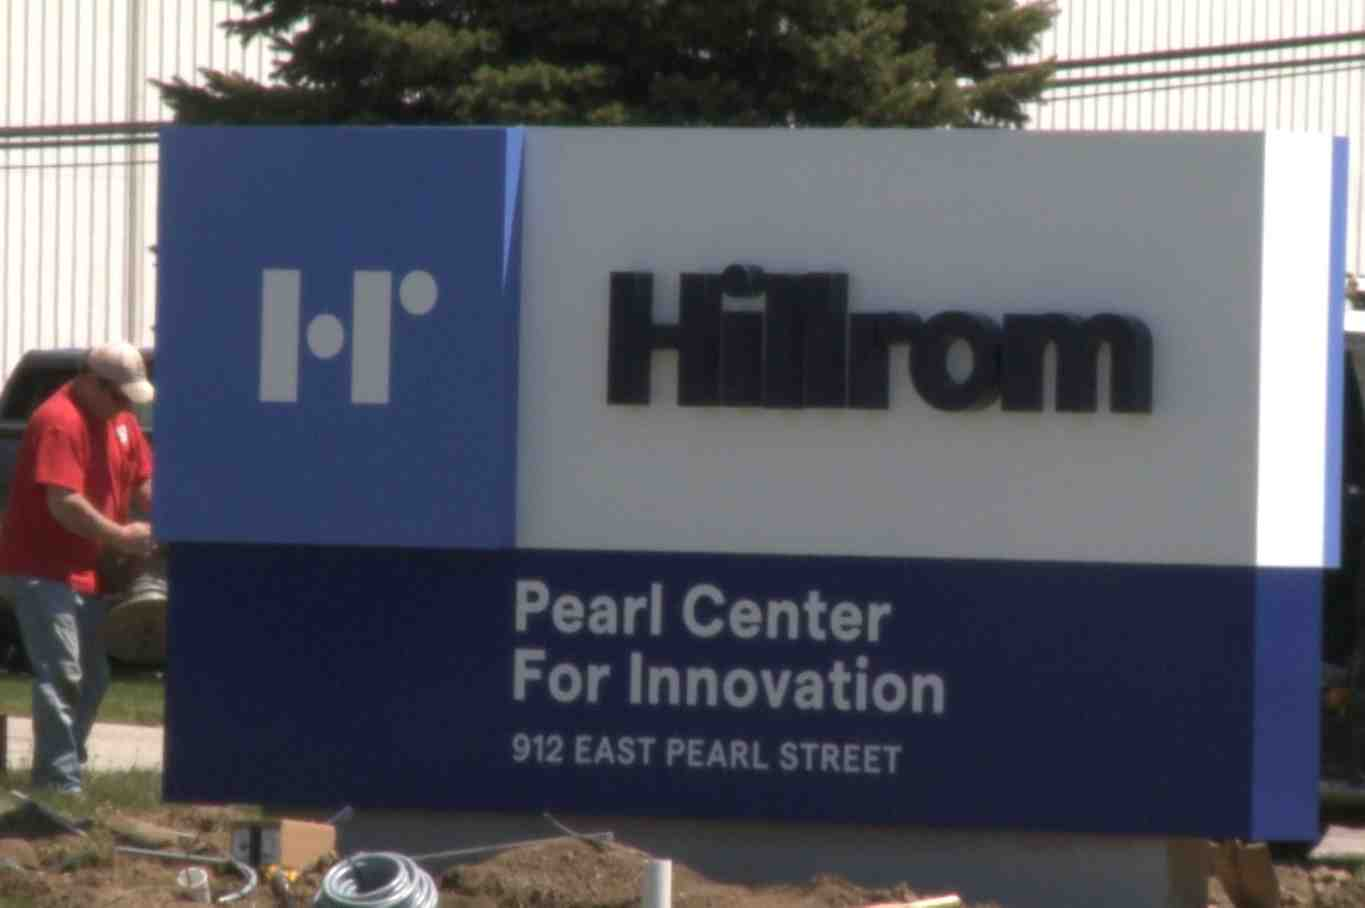 What companies are headquartered in Indiana?